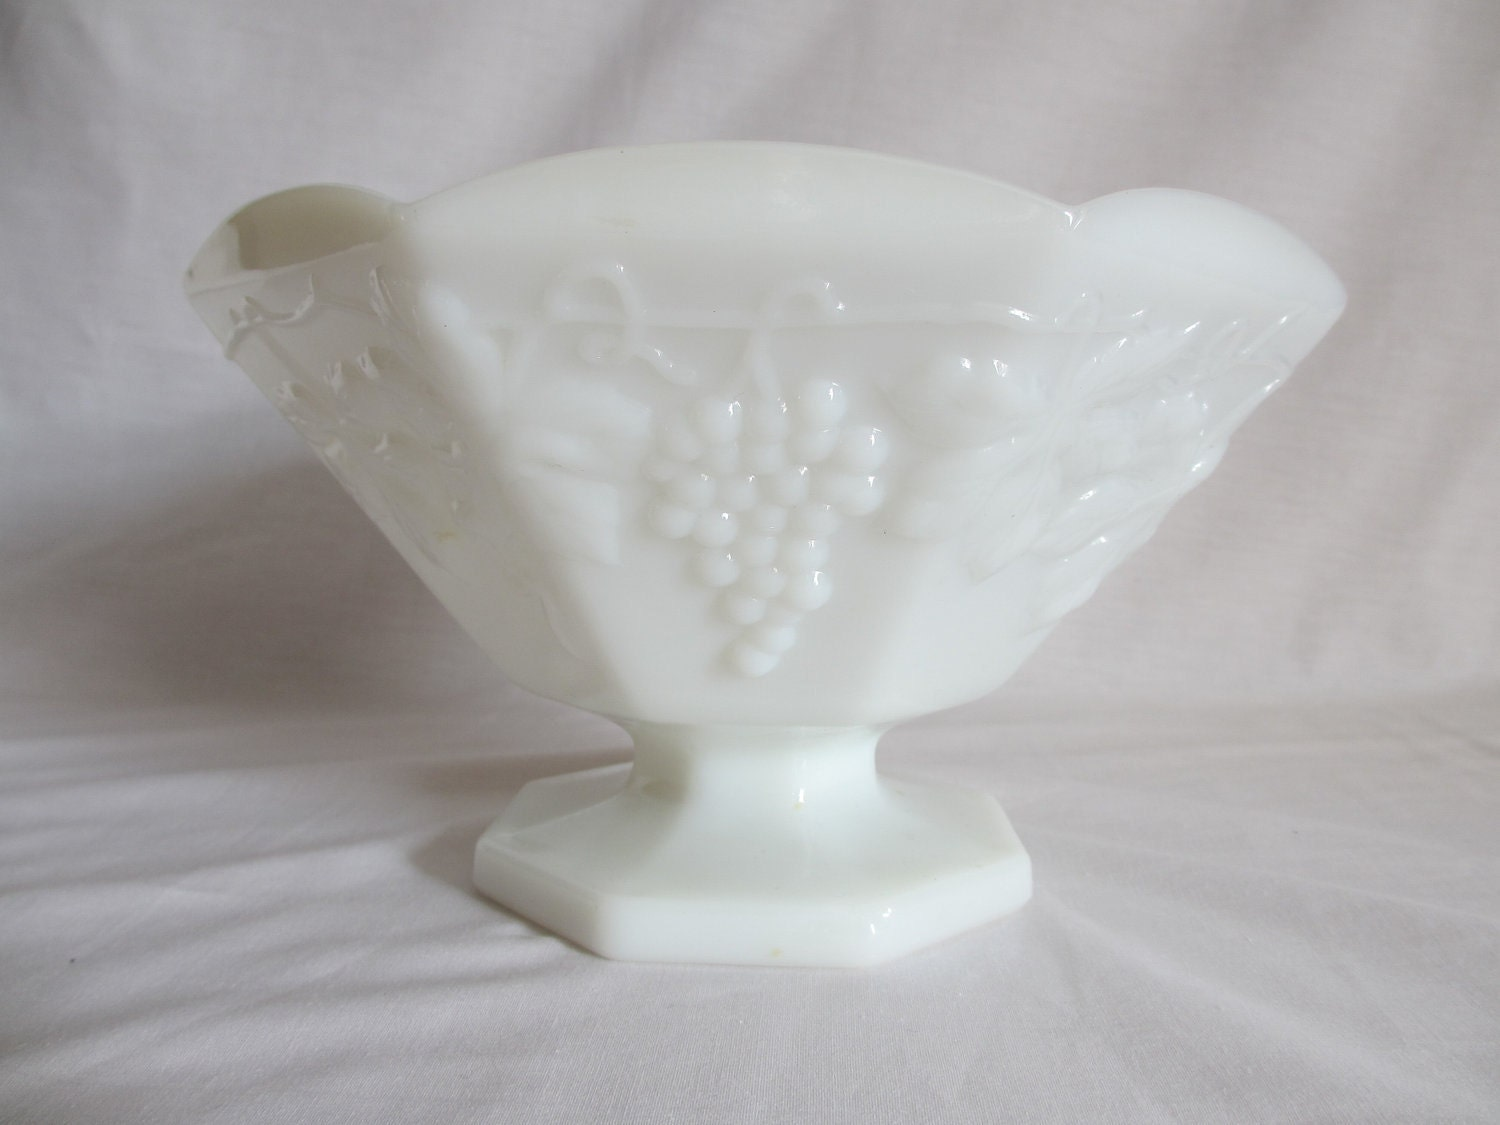 Vintage white milk glass compote or fruit bowl with grapes